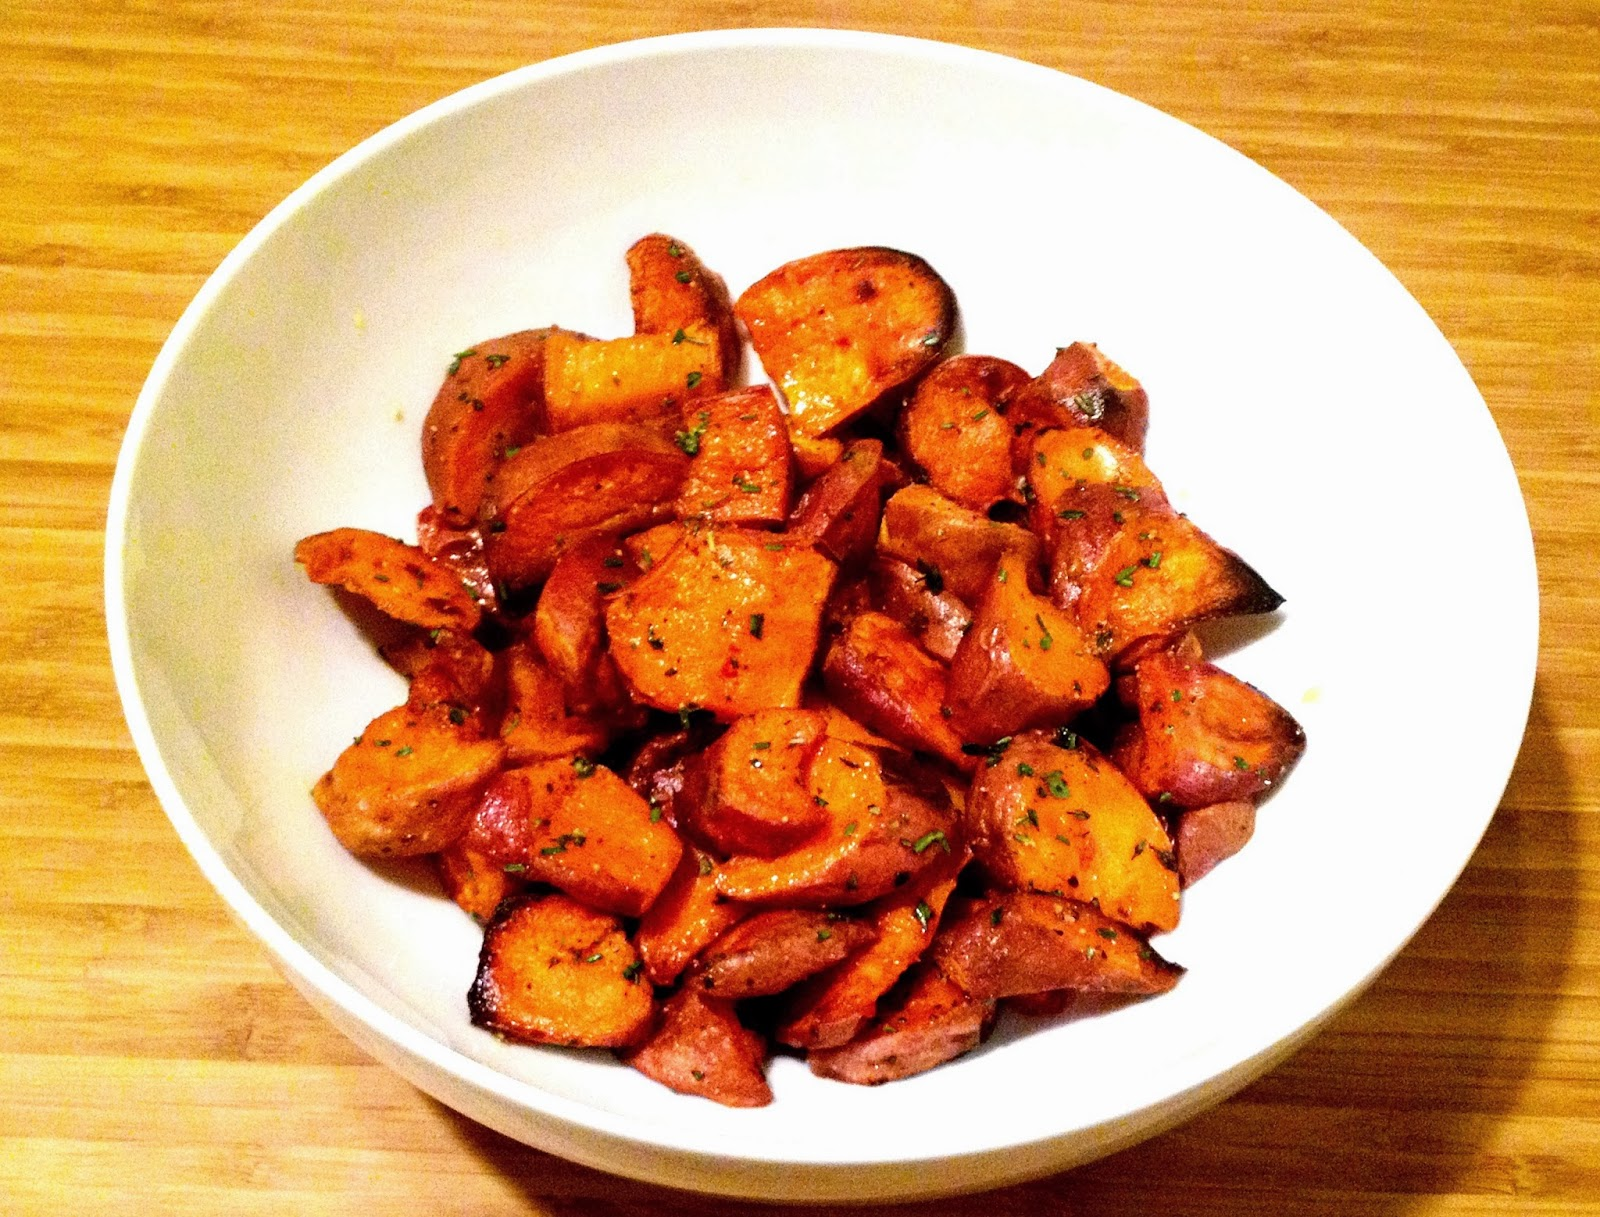 The Sensitive Epicure: Roasted Sweet Potatoes with Thyme and Rosemary